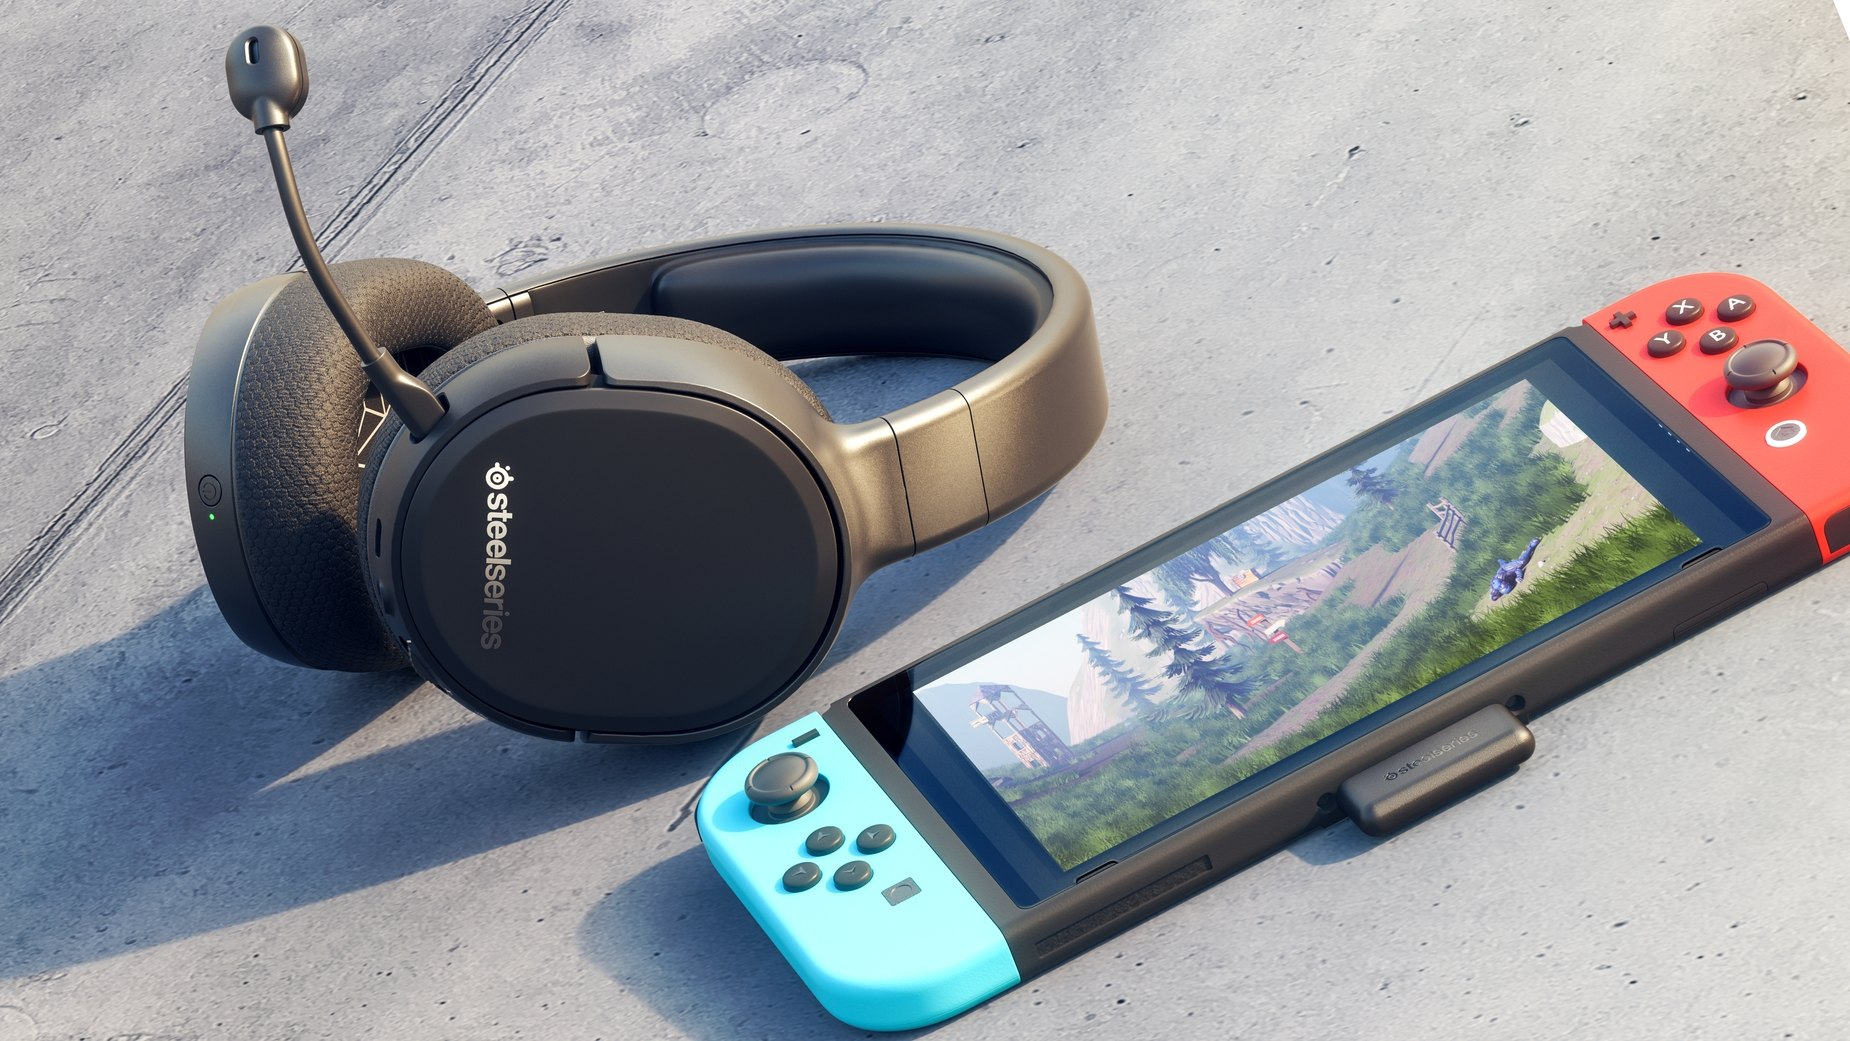 Arctis 1 Wireless gaming headset on surface next to a Nintendo Switch, connected via the wireless dongle.